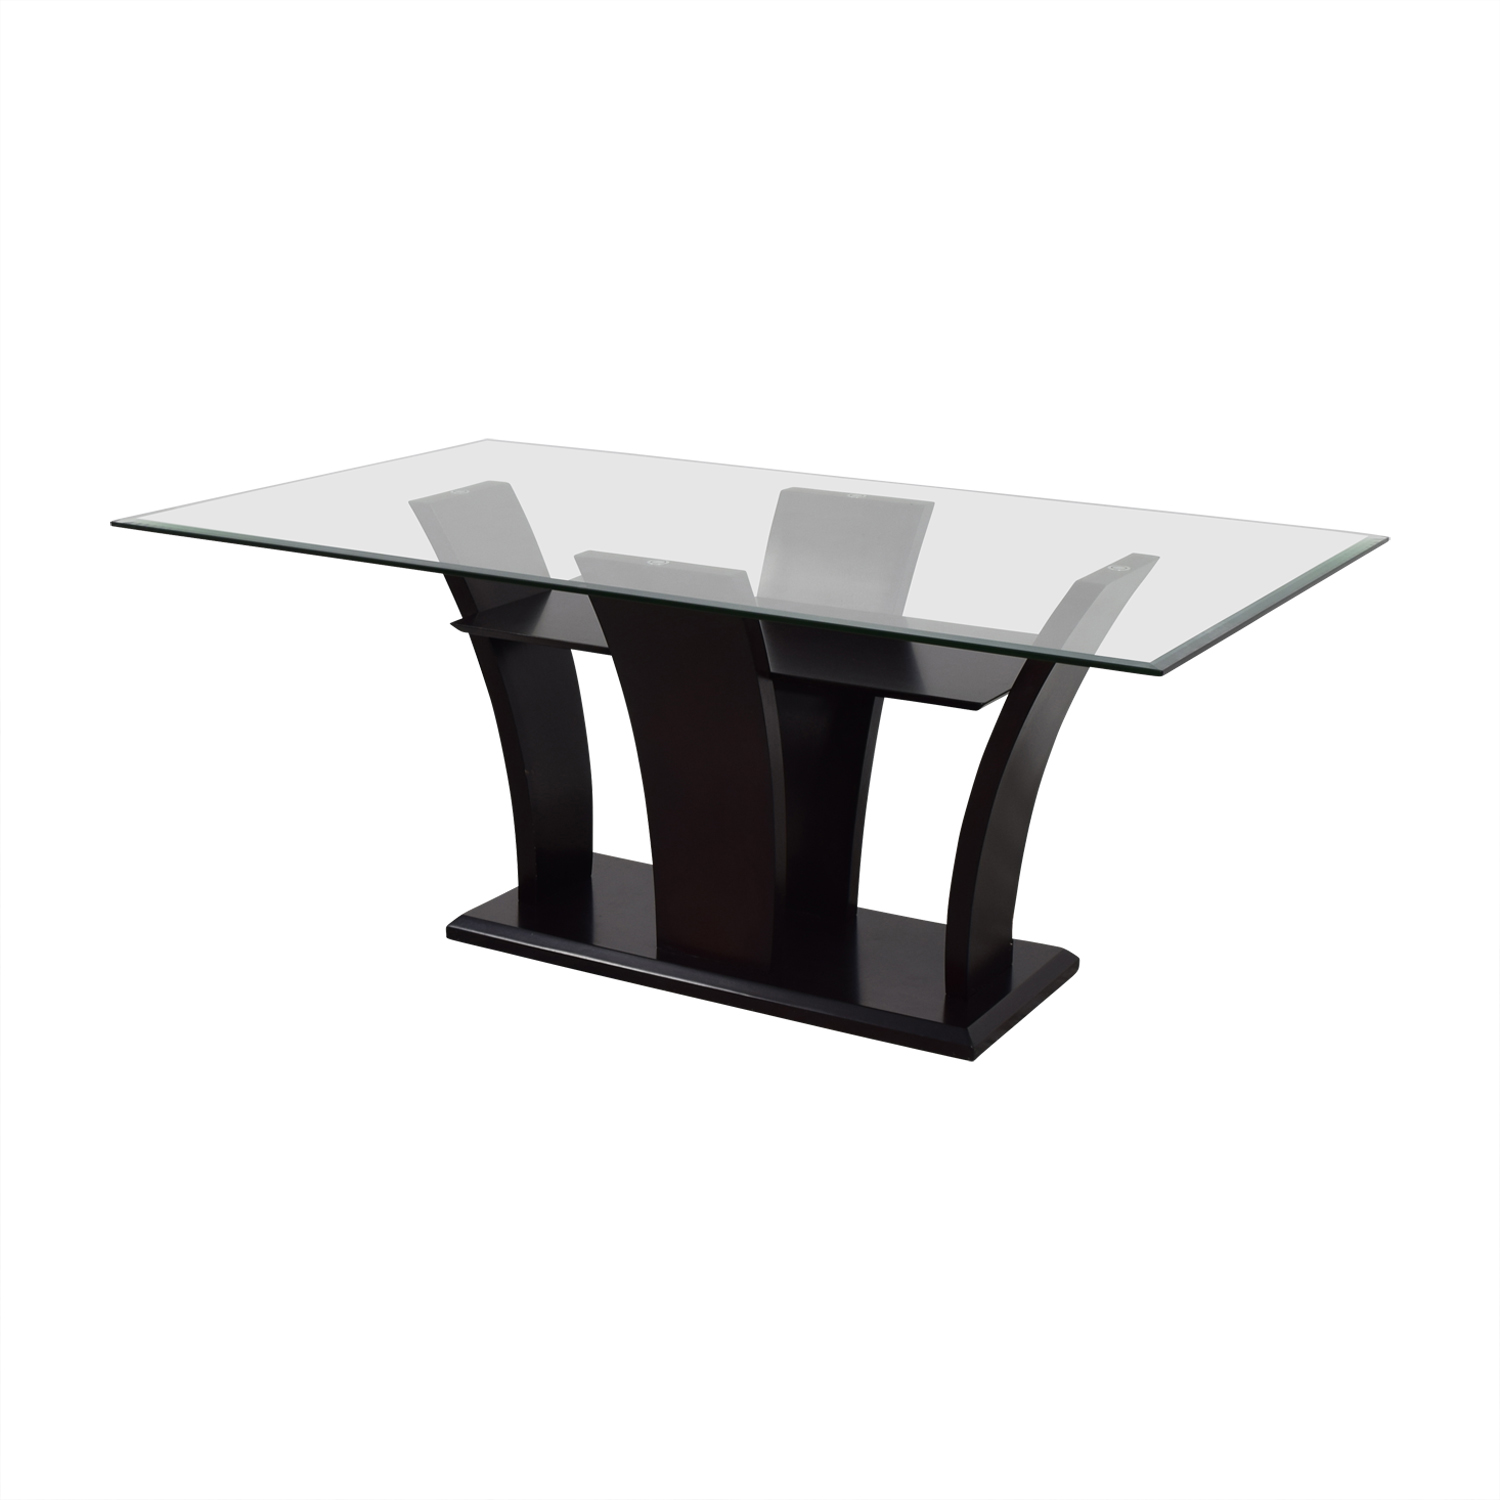 Mahogany Base Glass Top Dining Table / Dinner Tables